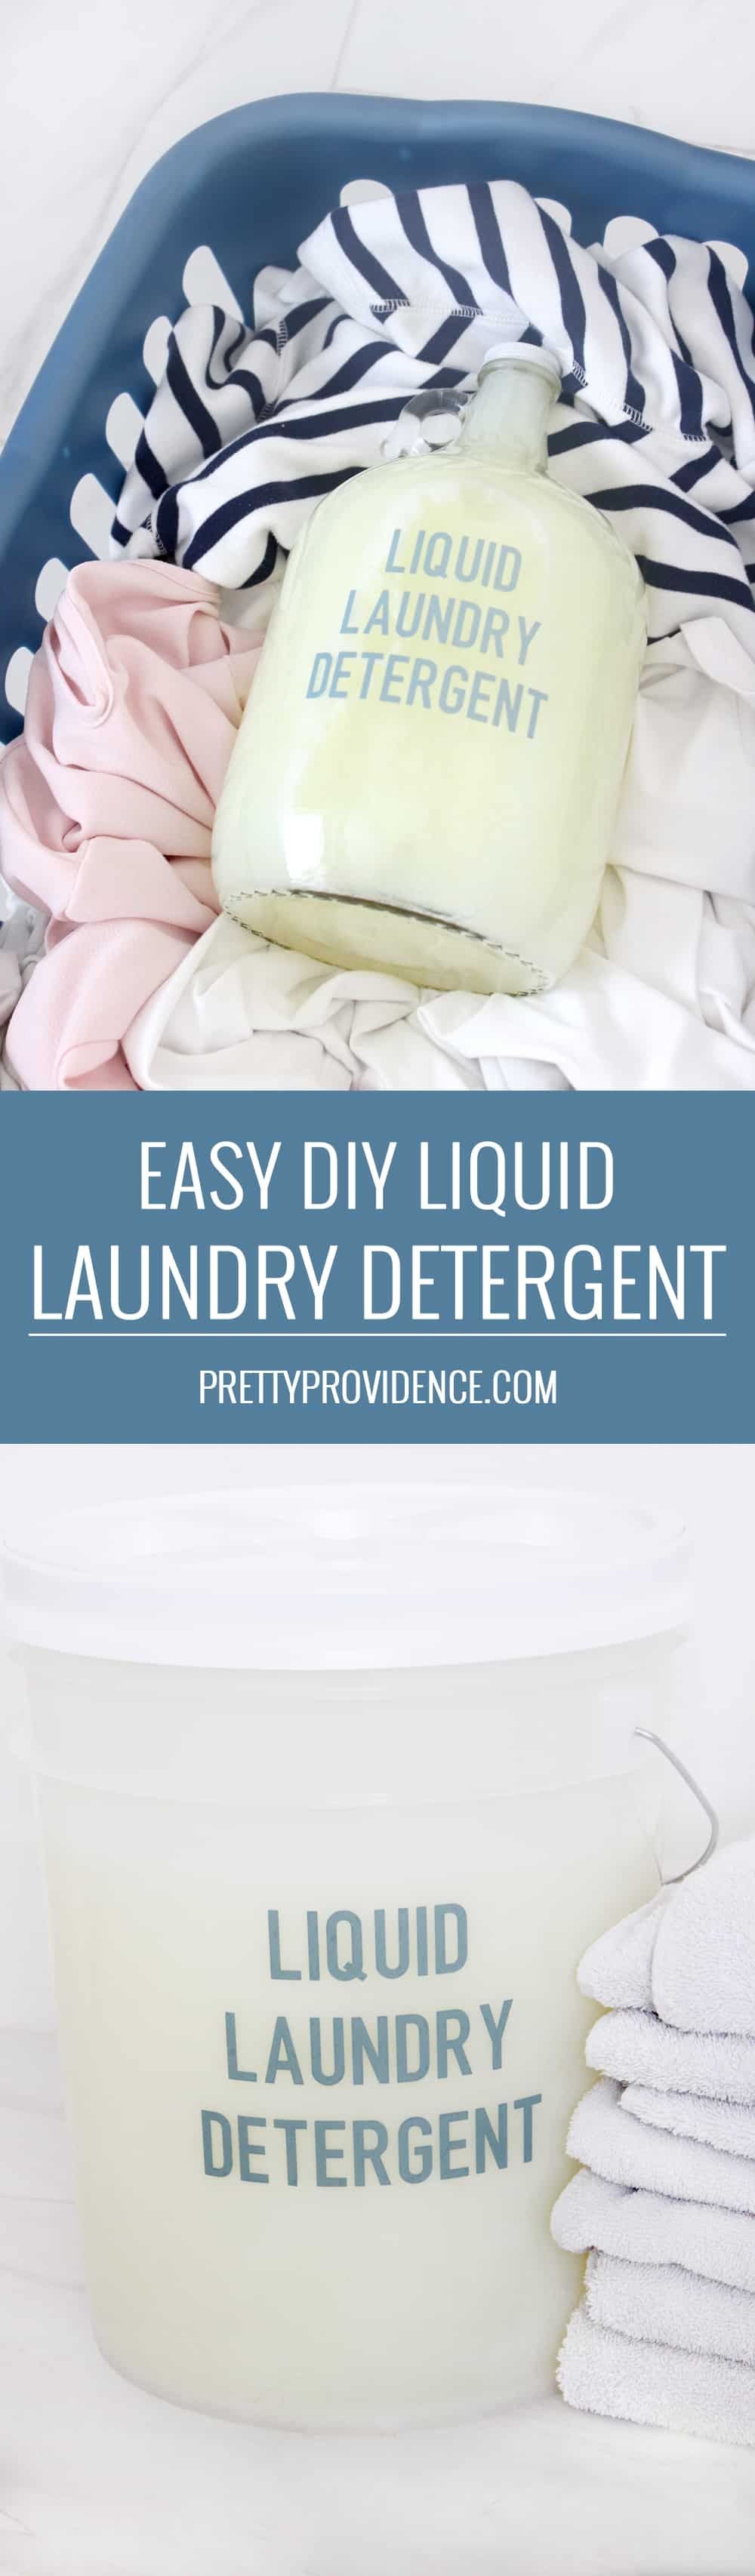 Easy homemade liquid laundry detergent! I love this stuff, and it will save you so much money laundry on detergent! The recipe makes a 5 gallon bucket and it works so well! #homemadelaundrydetergent #liquidlaundrydetergent #homemadeliquidlaundrydetergent #laundry #laundrydetergent #diylaundrydetergent #laundrydiy